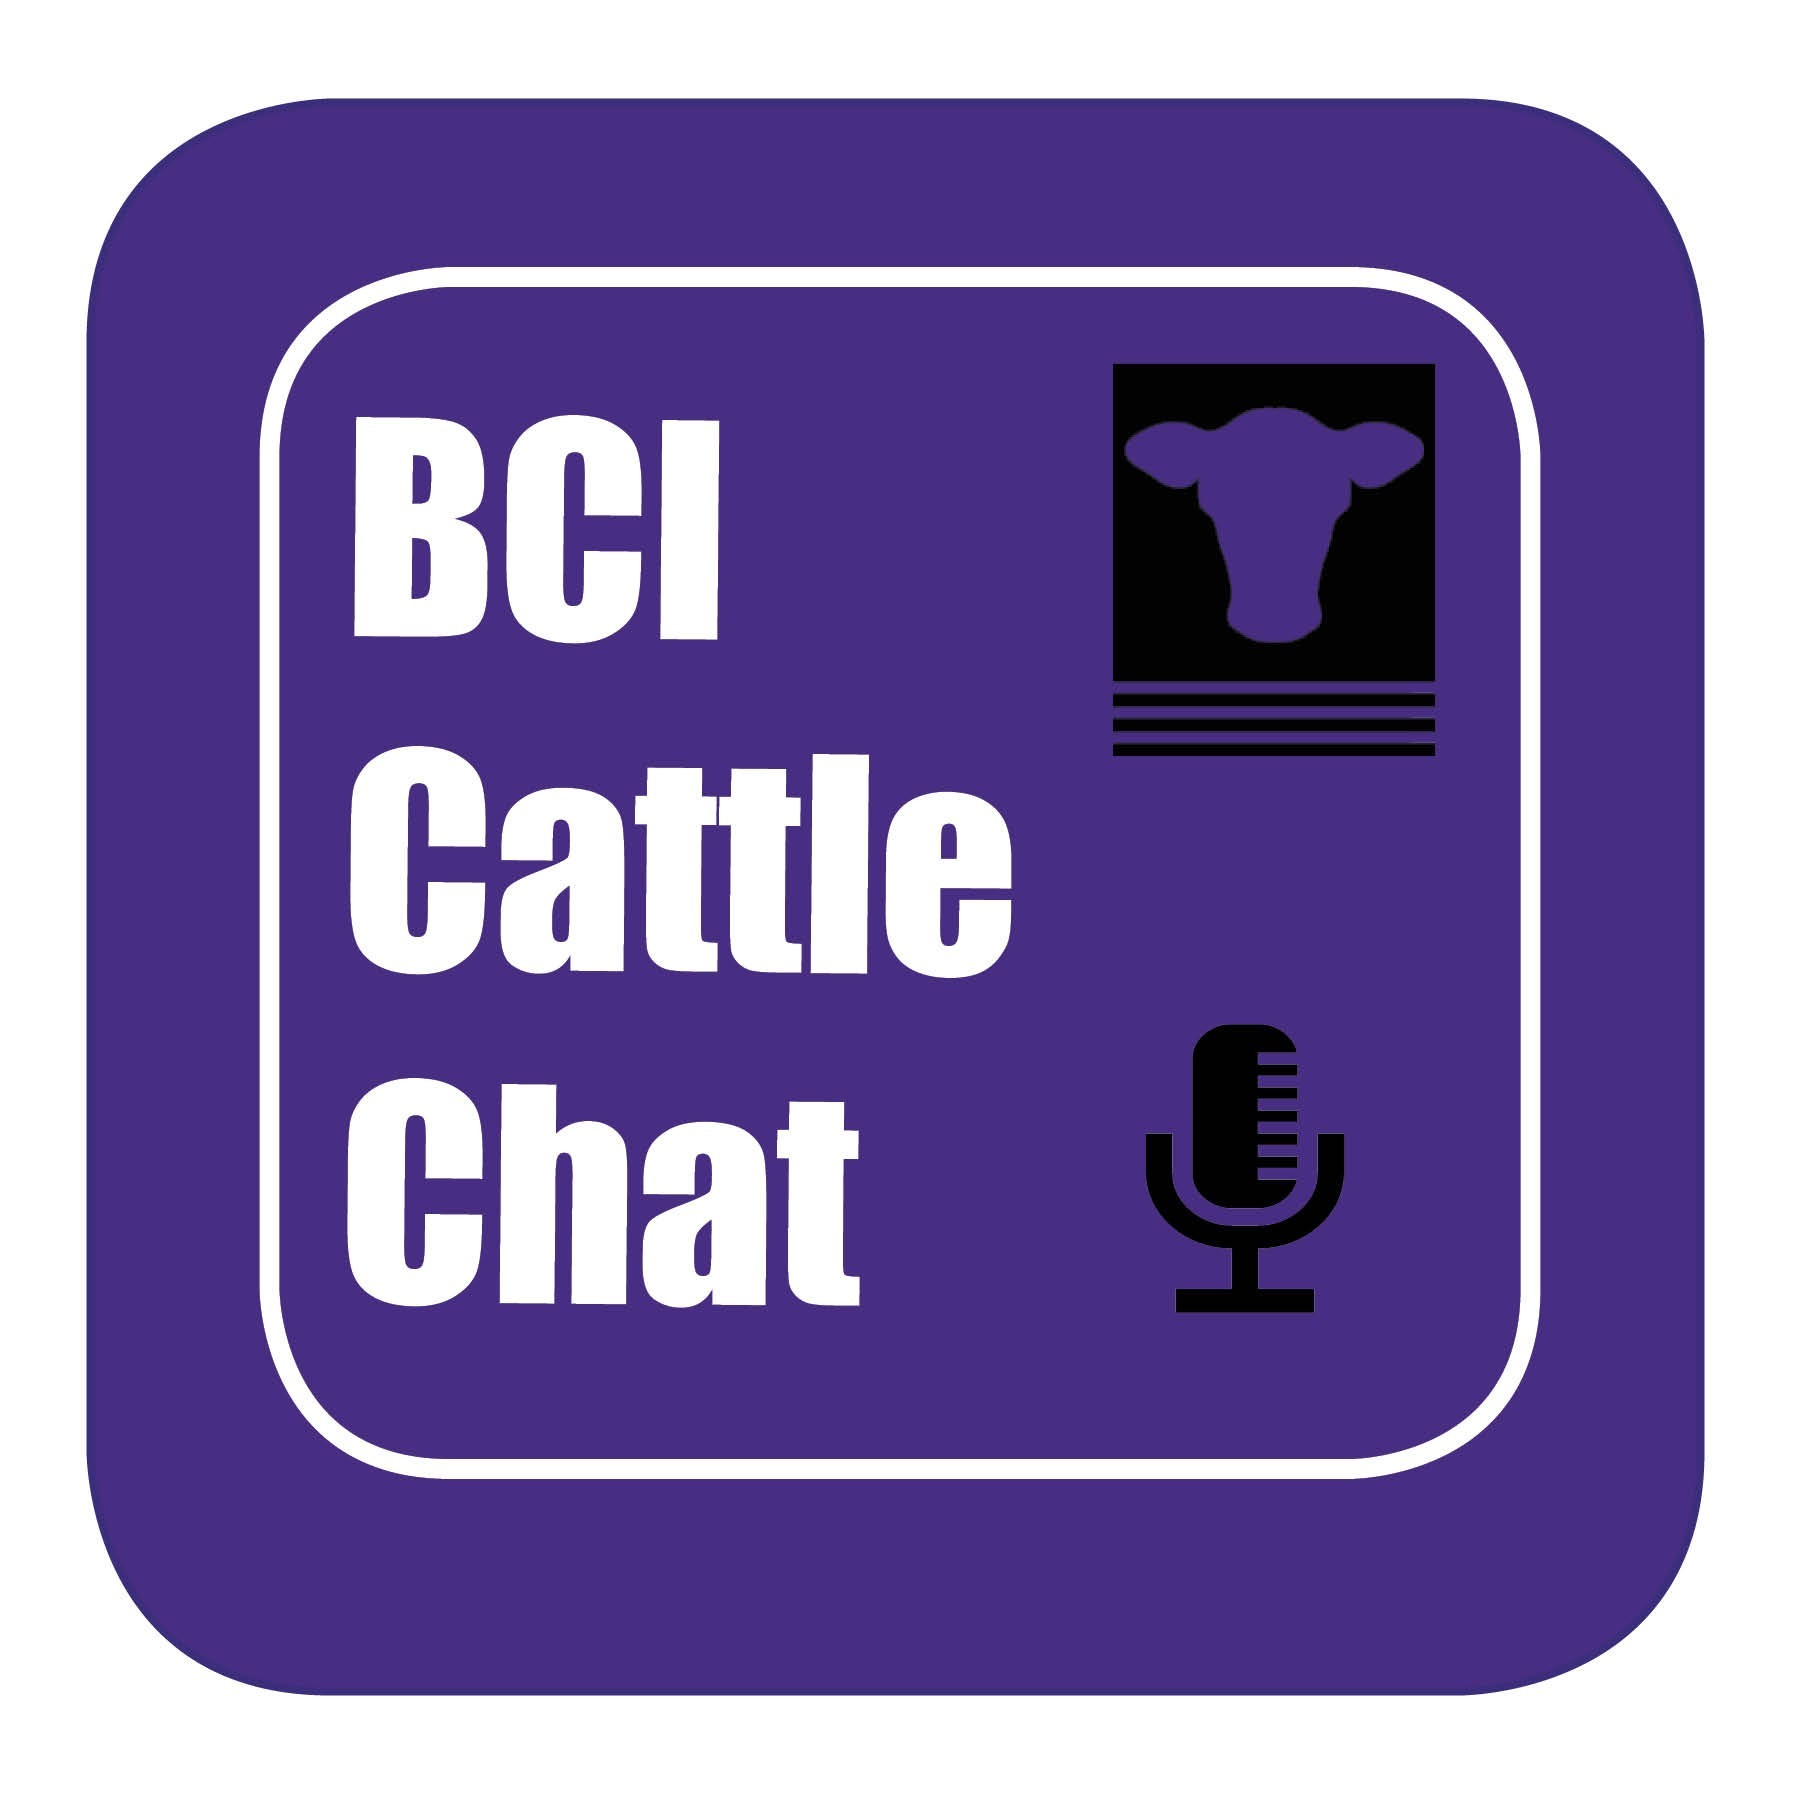 BCI Cattle Chat - Episode 49